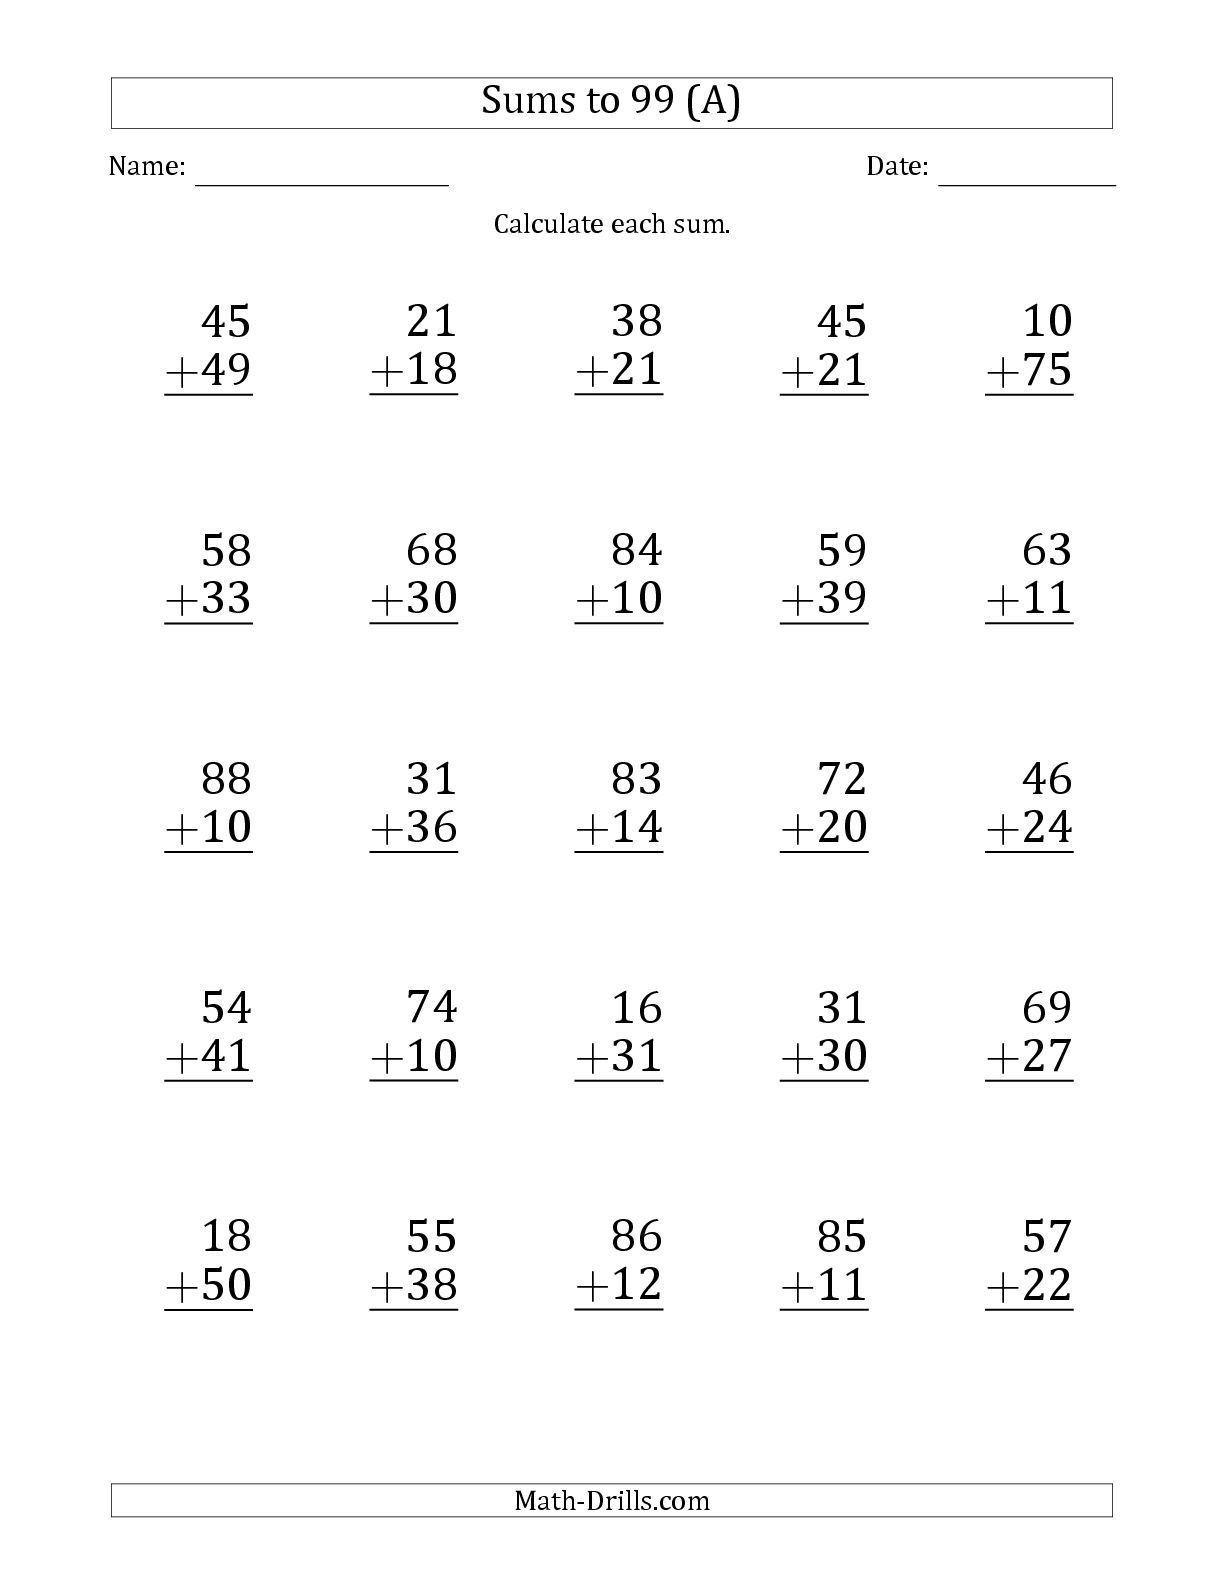 medium resolution of The Large Print - Adding 2-Digit Numbers with Sums up to 99 (25 Questions)  (A) math worksheet from the…   Math worksheets